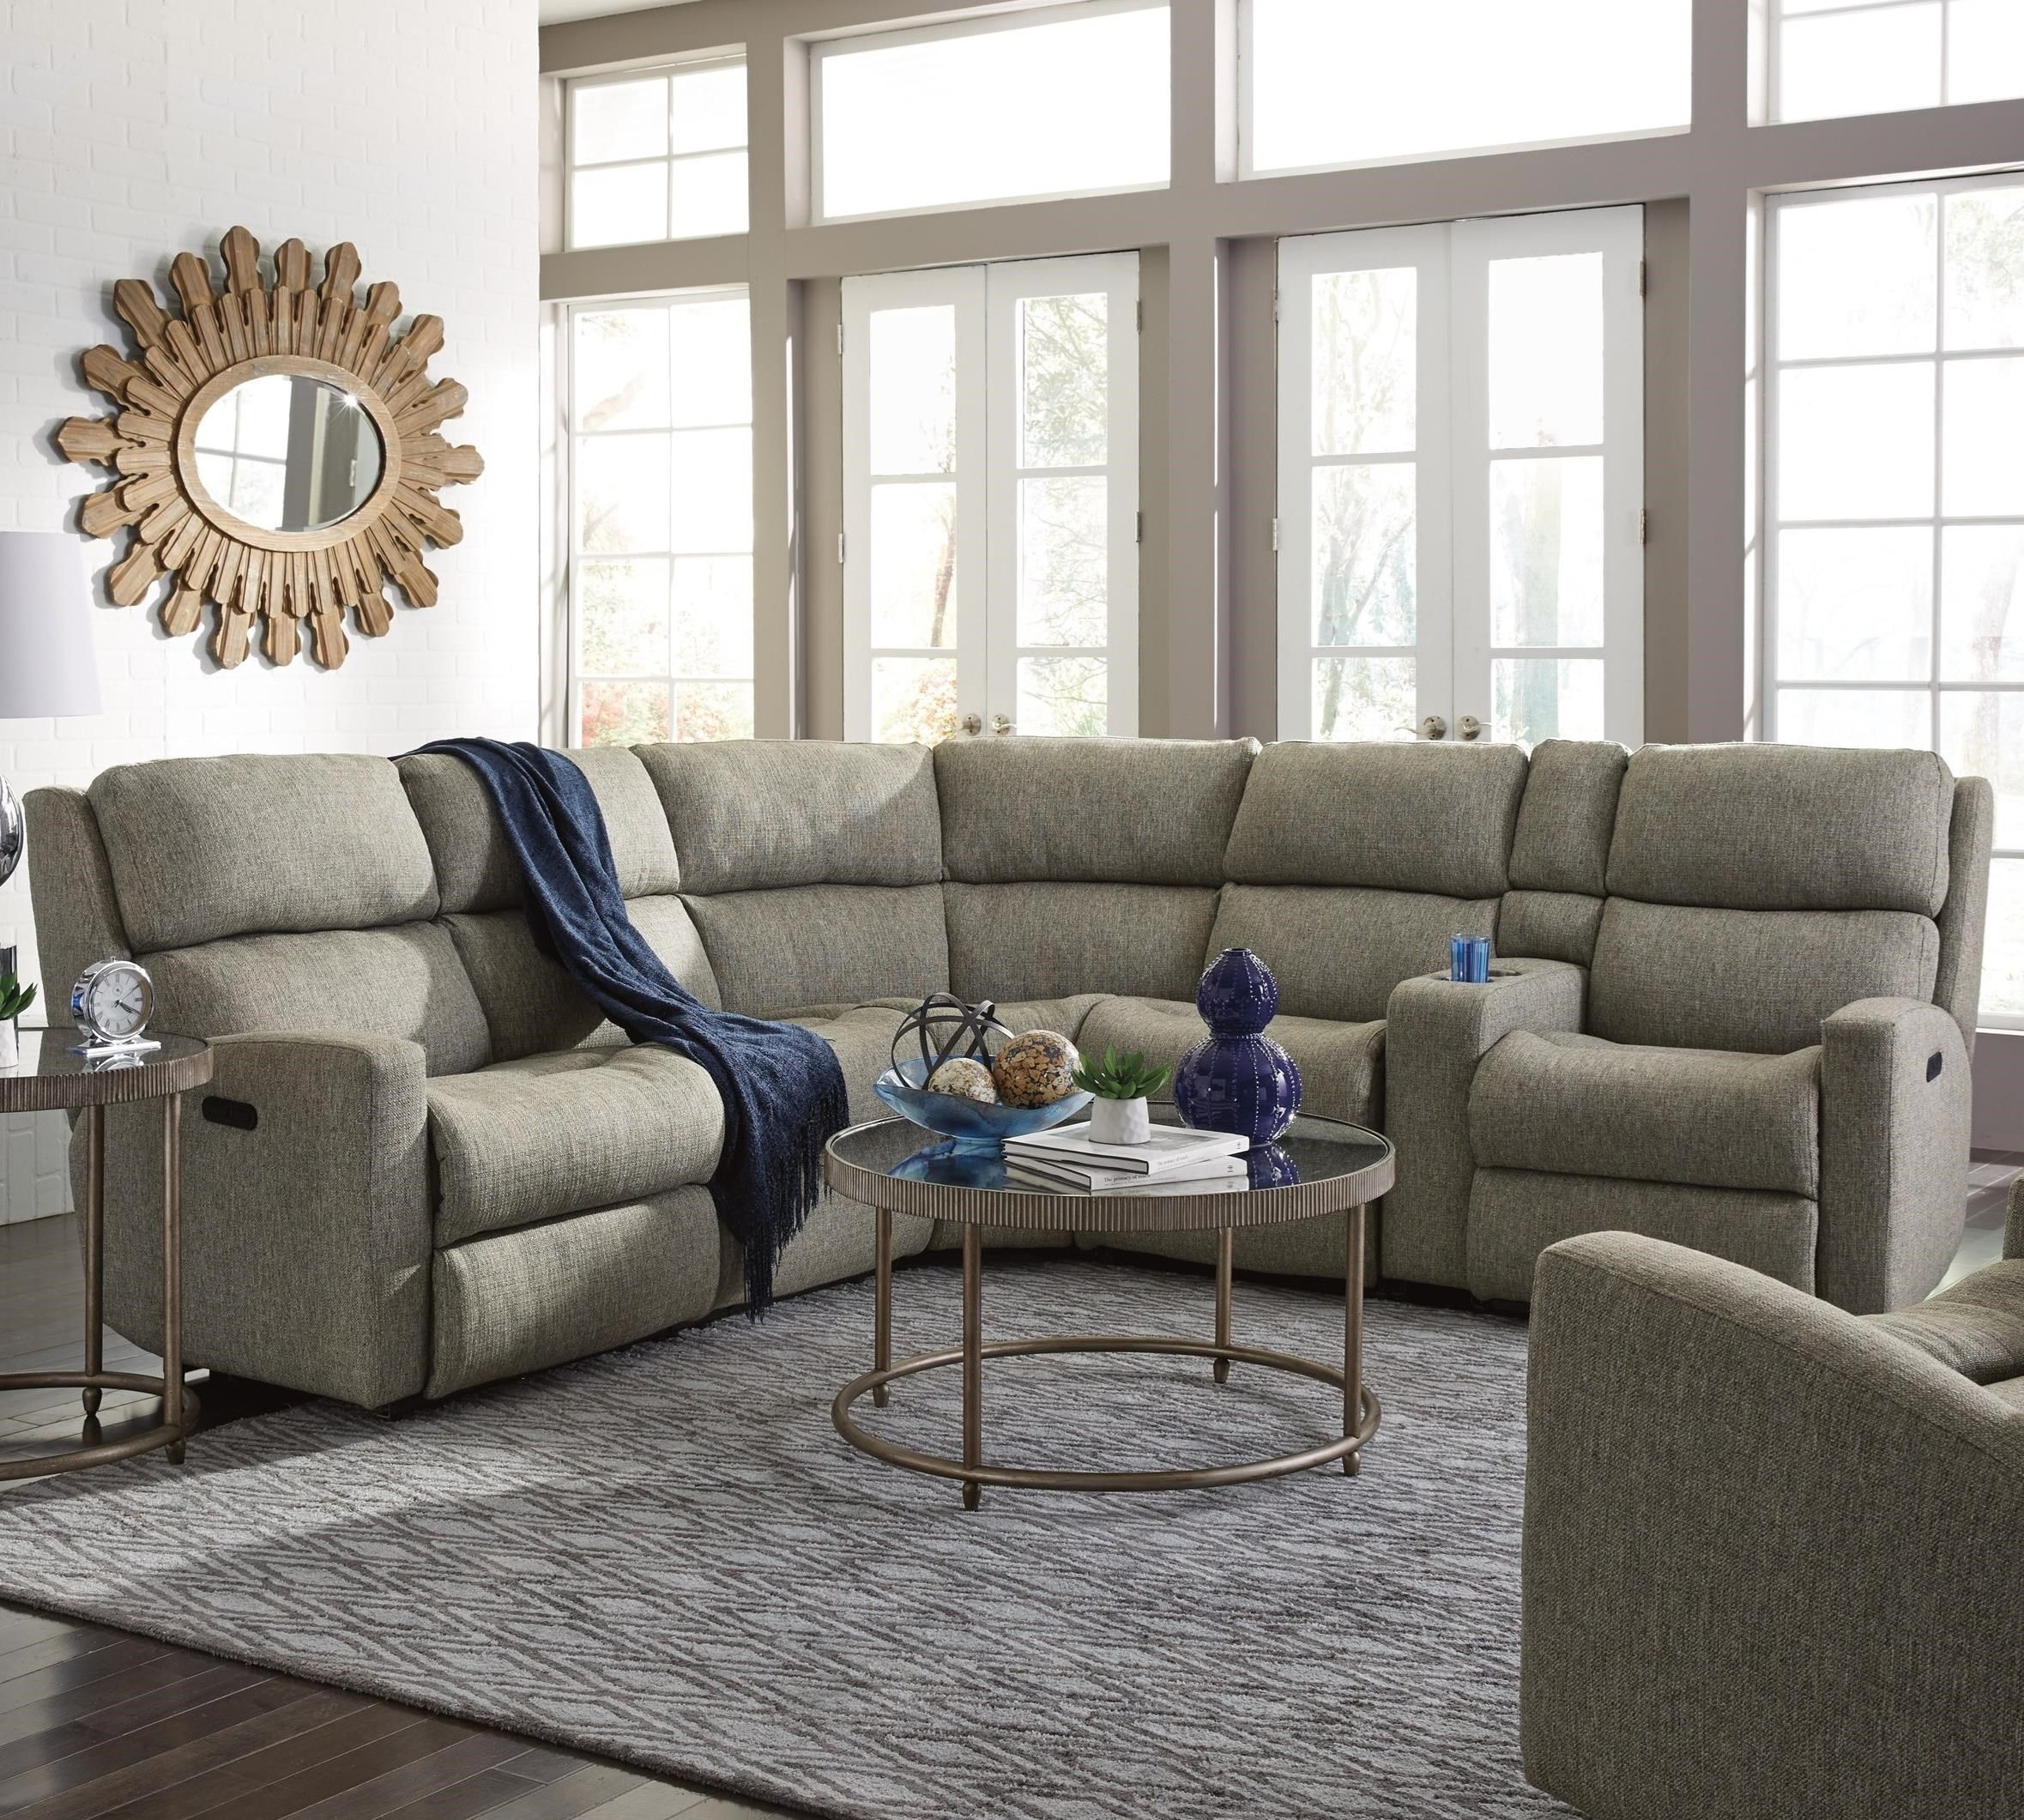 Catalina 6 Pc Reclining Sectional W Pwr Headrests By Flexsteel Available At M Reclining Sectional Power Reclining Sectional Sofa Sectional Sofa With Recliner